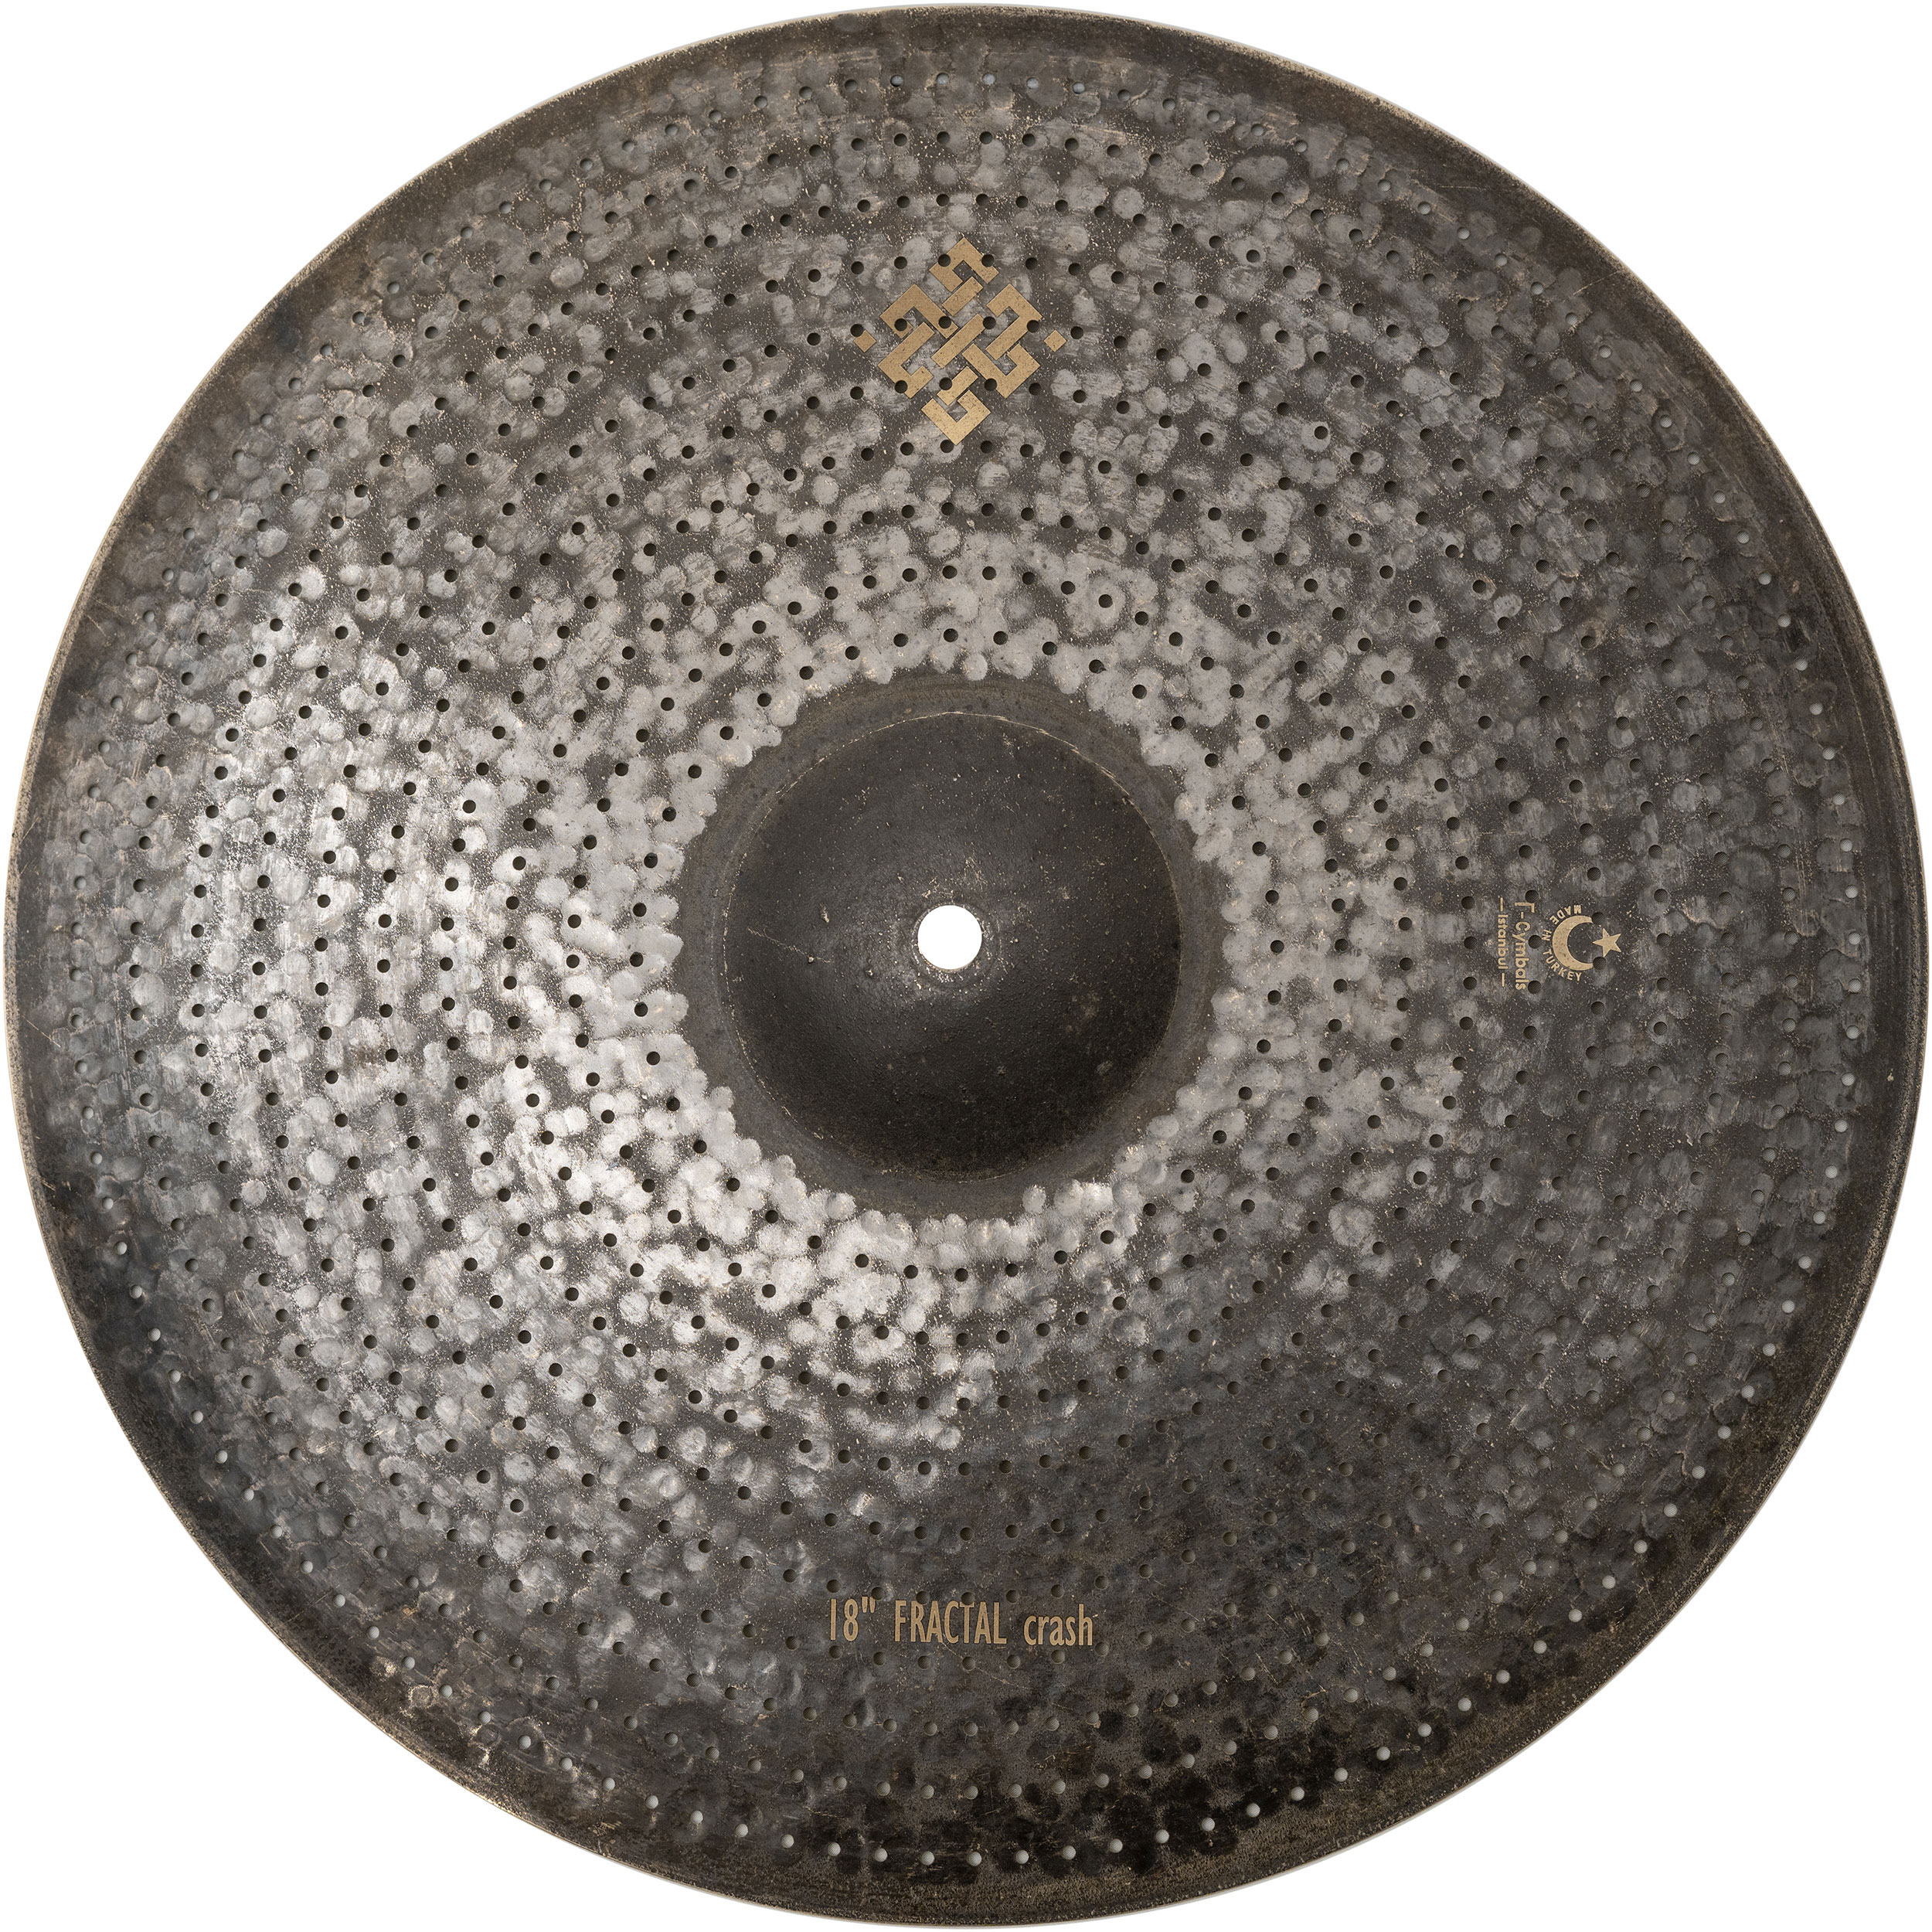 "T-Cymbals 18"" Air Fractal Crash Cymbal"